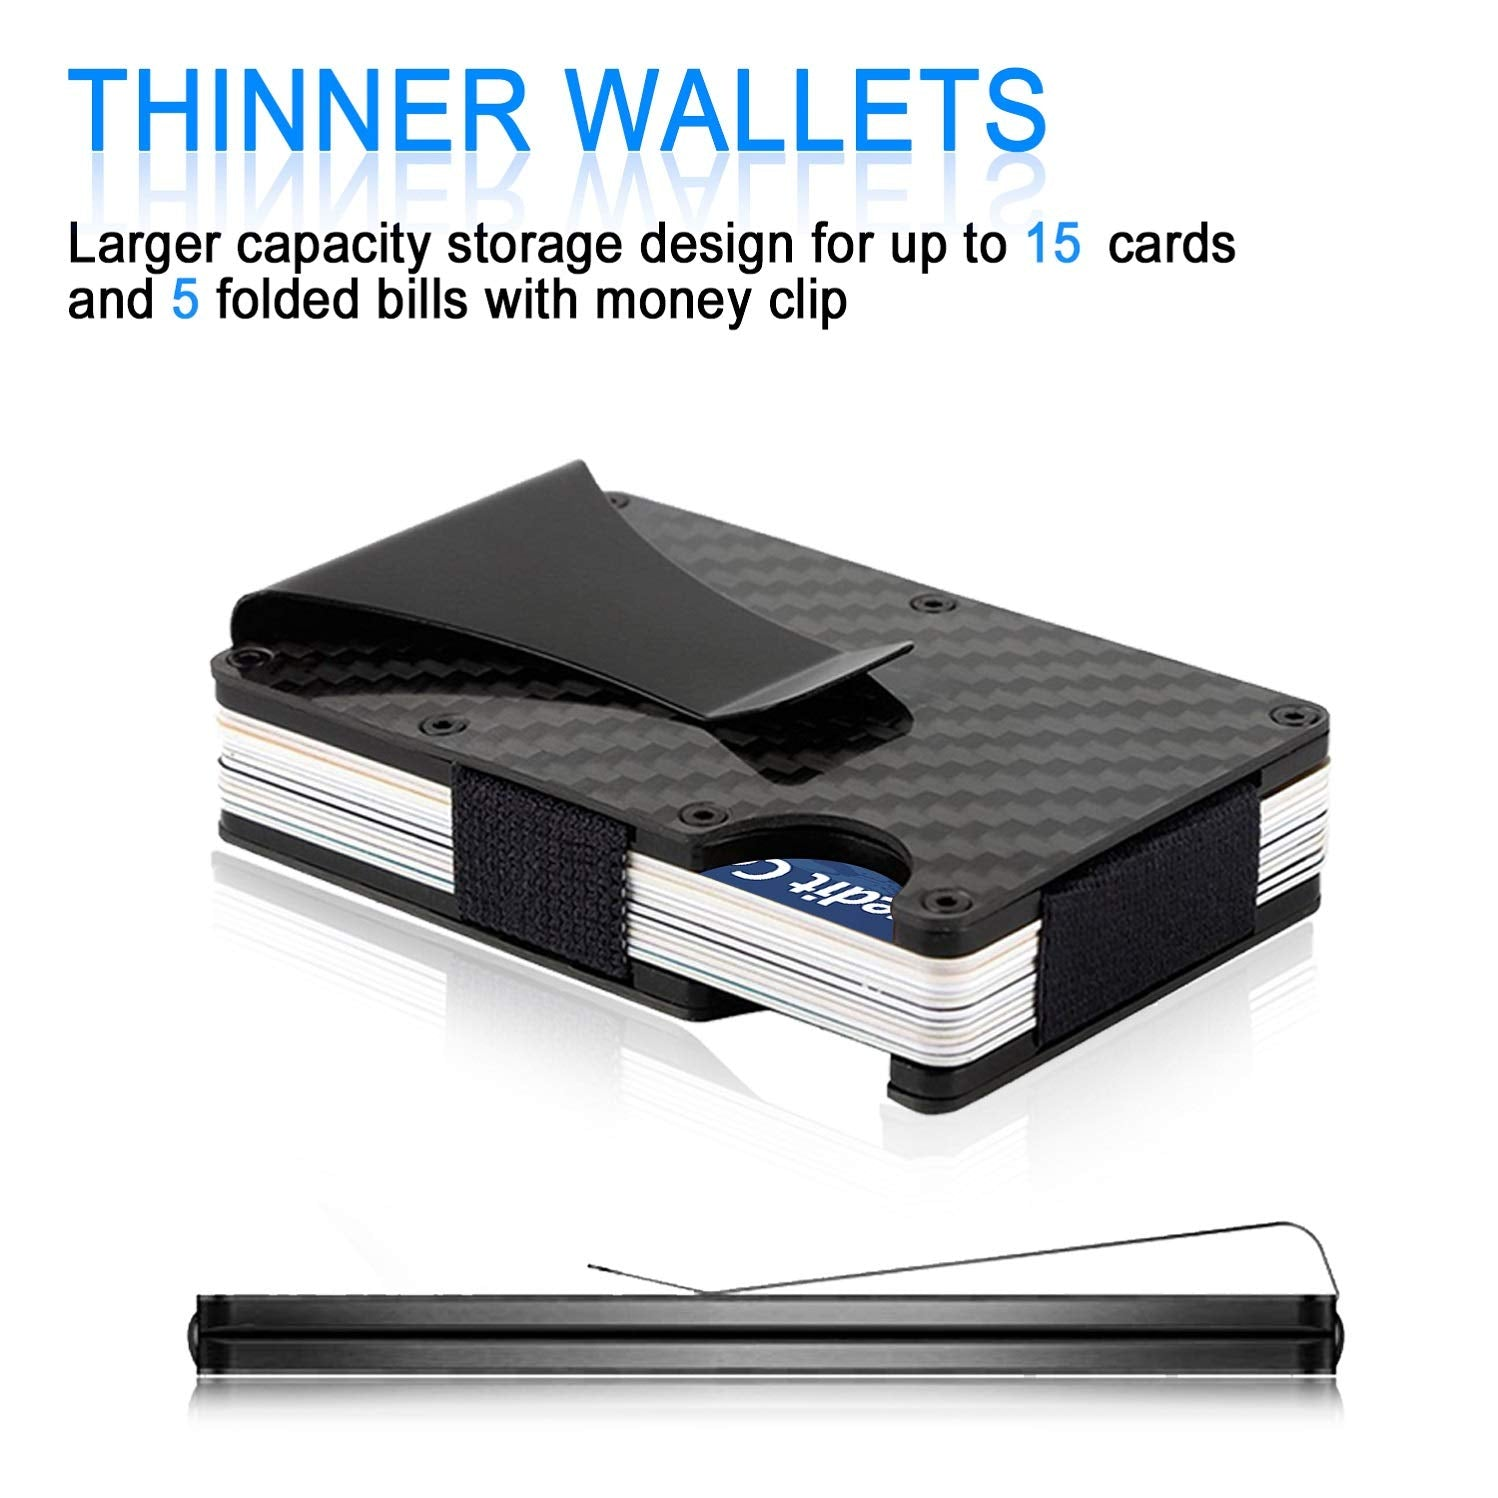 BelCorner Carbon Fibre Wallet, Slim Money Clip & Minimalist RFID Blocking Front Packet Slim Wallet, Aluminum Metal Wallet & Business Card Holder Billfolds for Men and Women